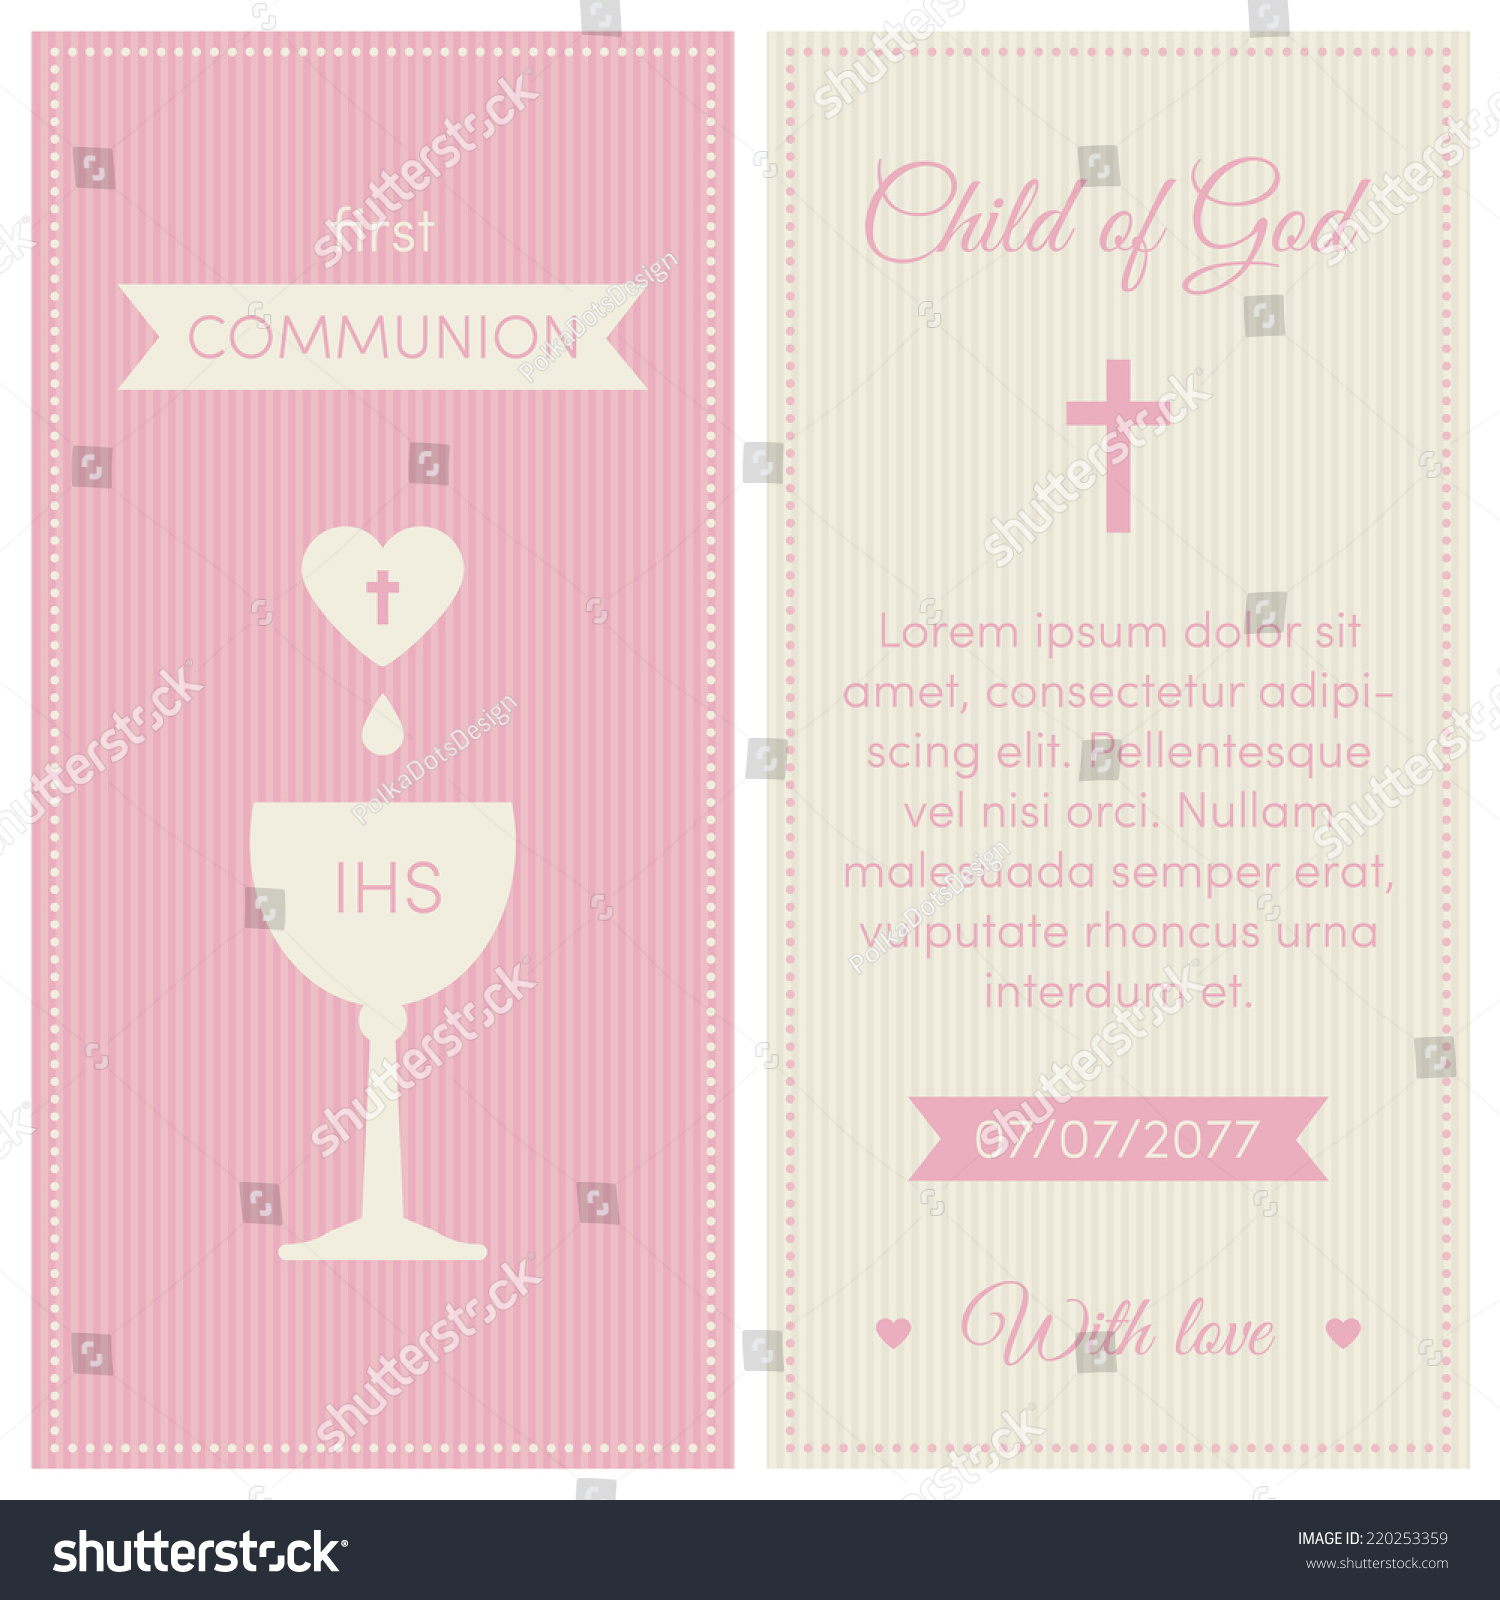 first communion invitation template pink and cream colors illustration of chalice with wine